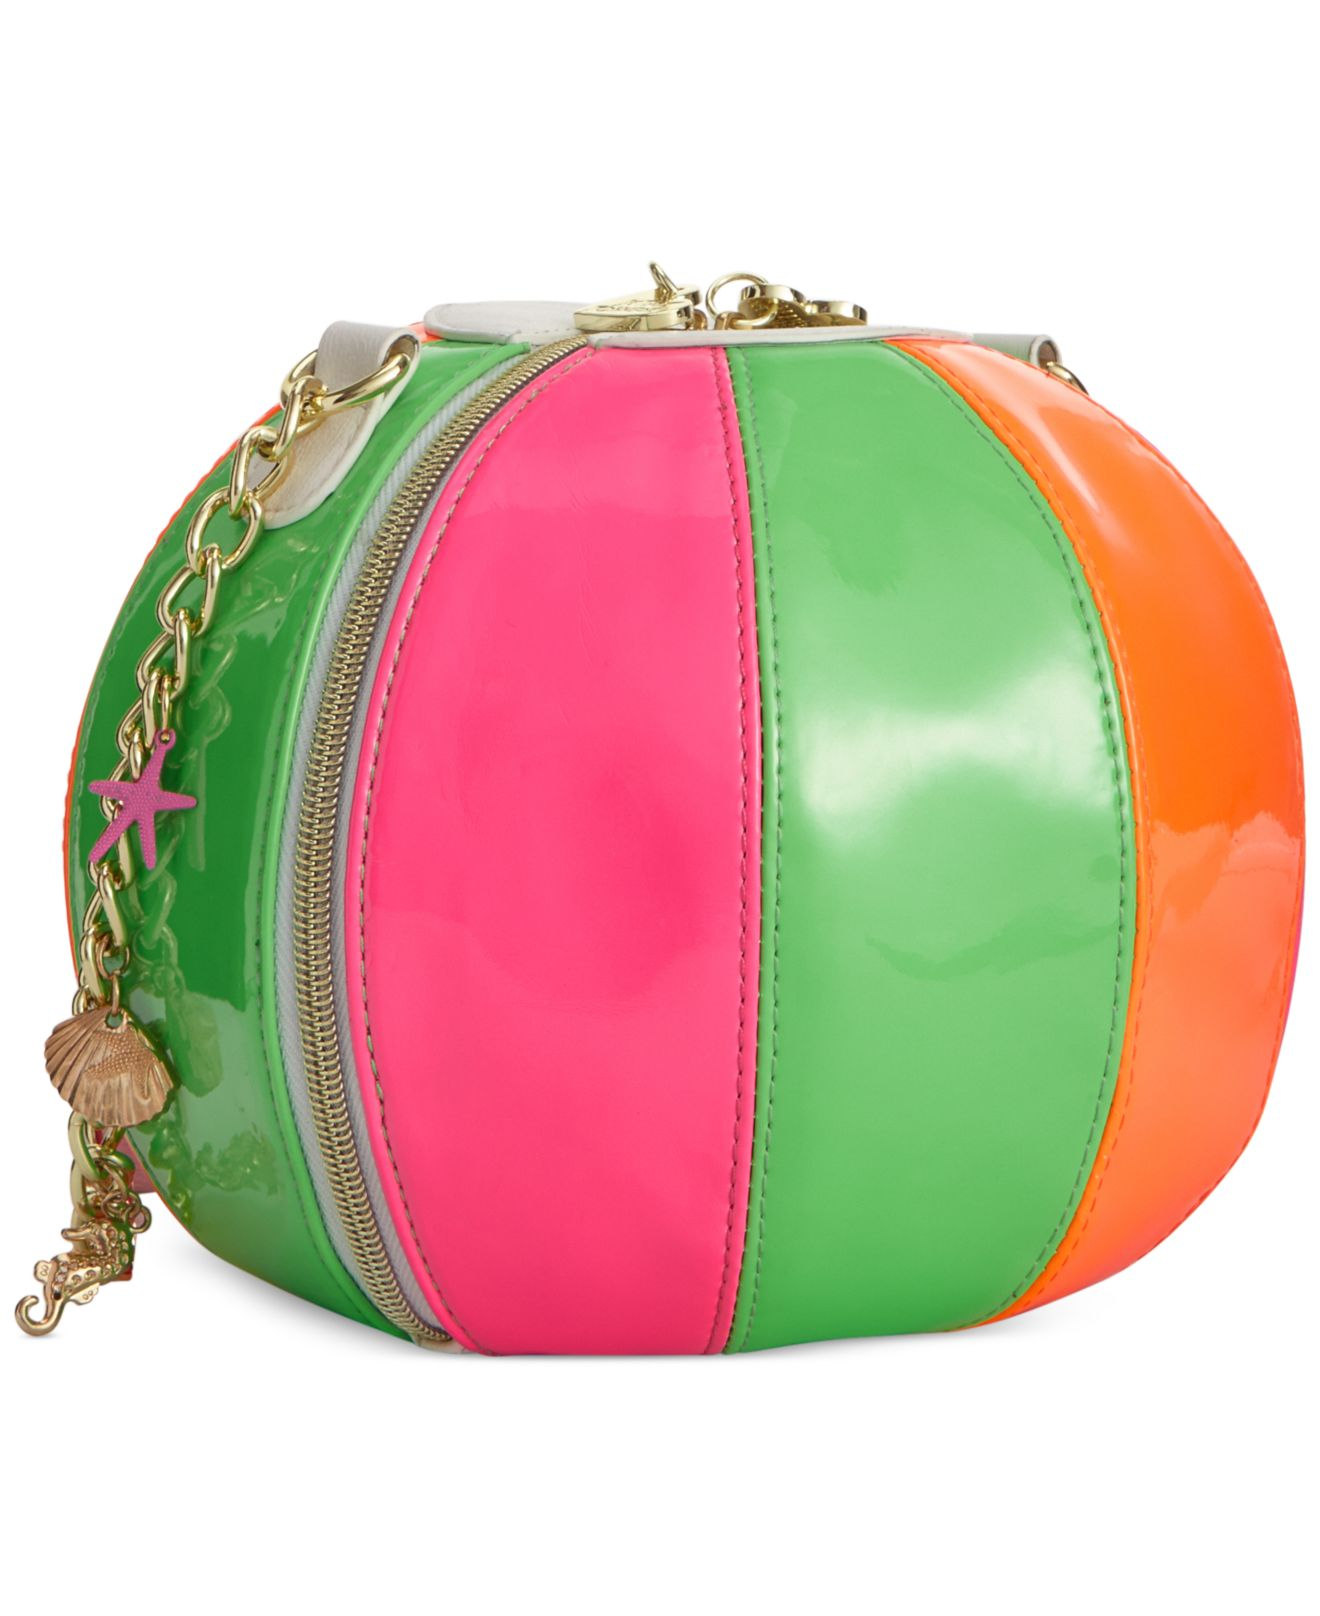 Betsey johnson Macy's Exclusive Beach Ball Shoulder Bag | Lyst